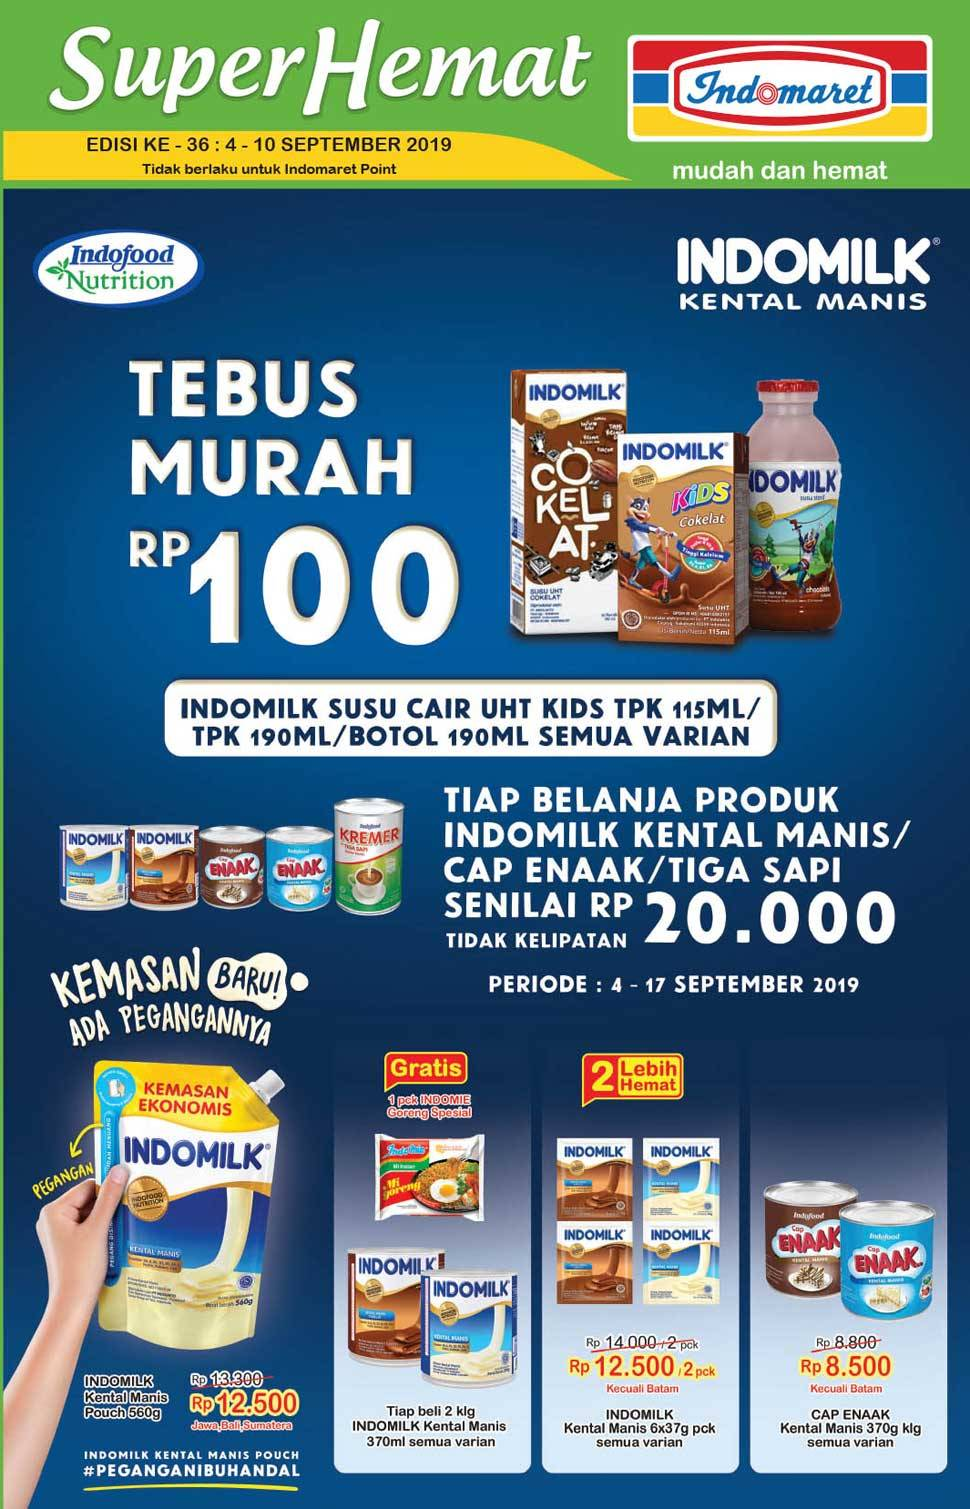 Katalog Promo Indomaret Super Hemat periode 04-10 September 2019